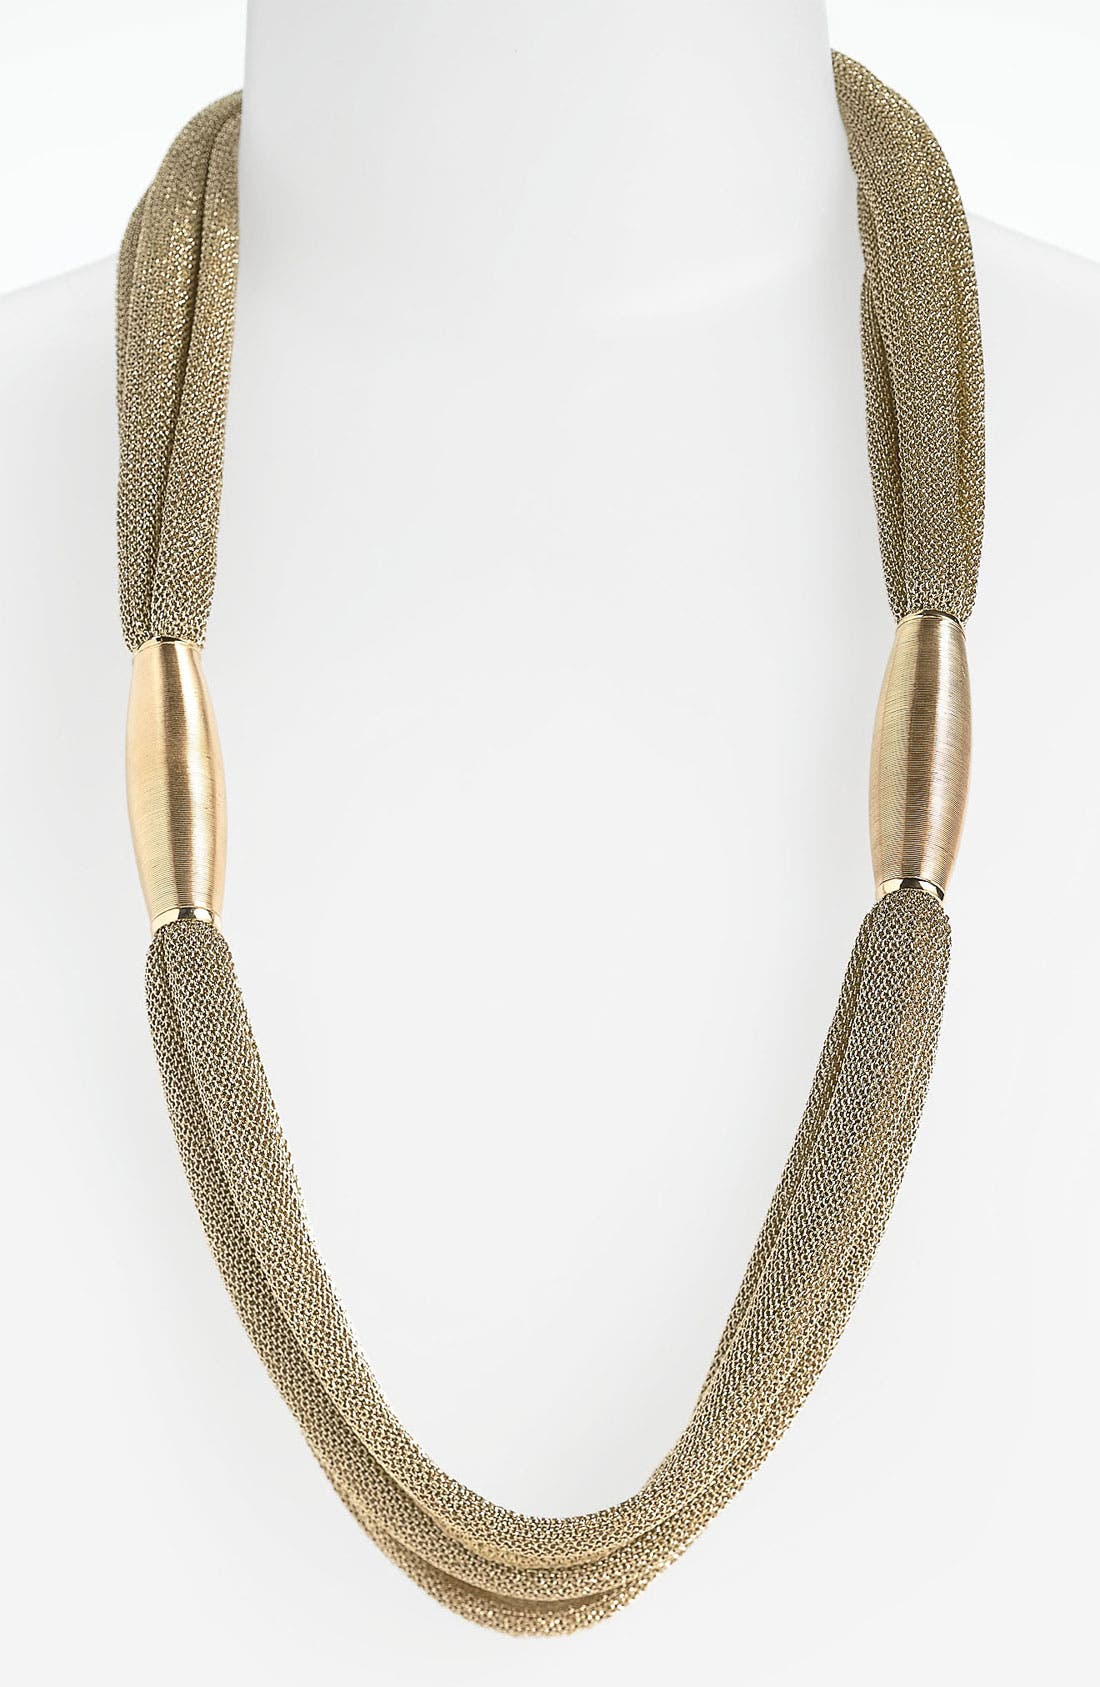 Alternate Image 1 Selected - Adami & Martucci 'Seta' Multistrand Necklace (Nordstrom Exclusive)